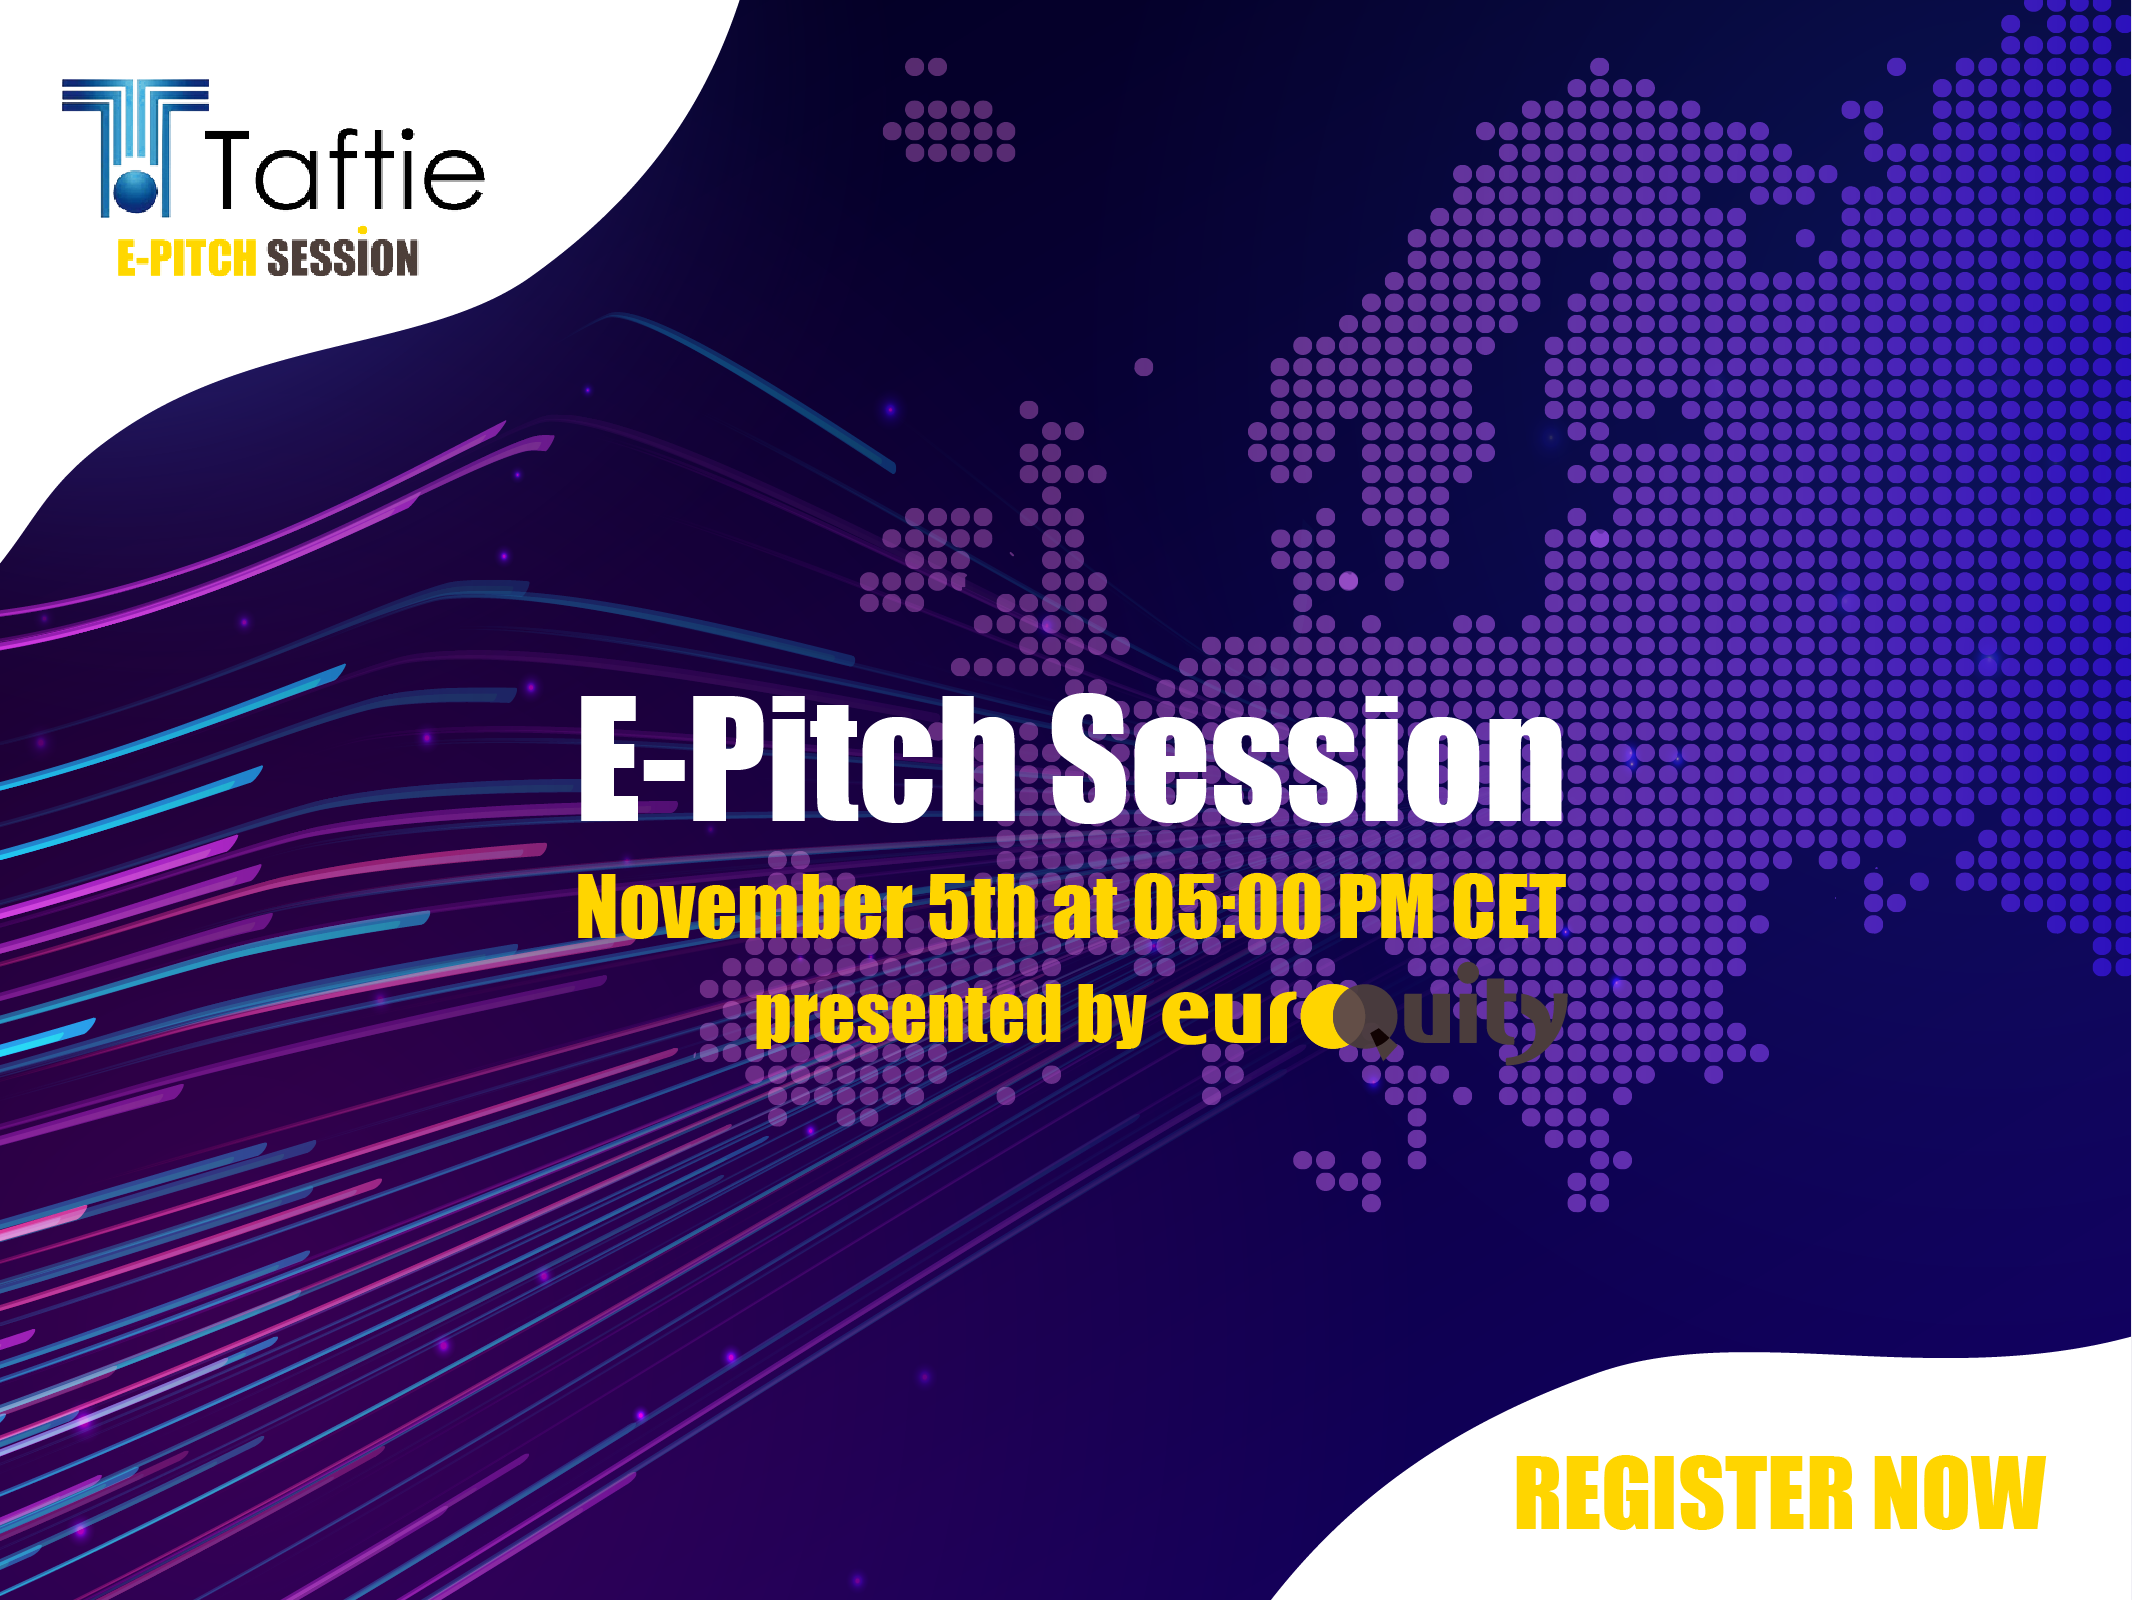 Join the Taftie High Potential E-Pitch session on November 5 at 05:00 PM CET